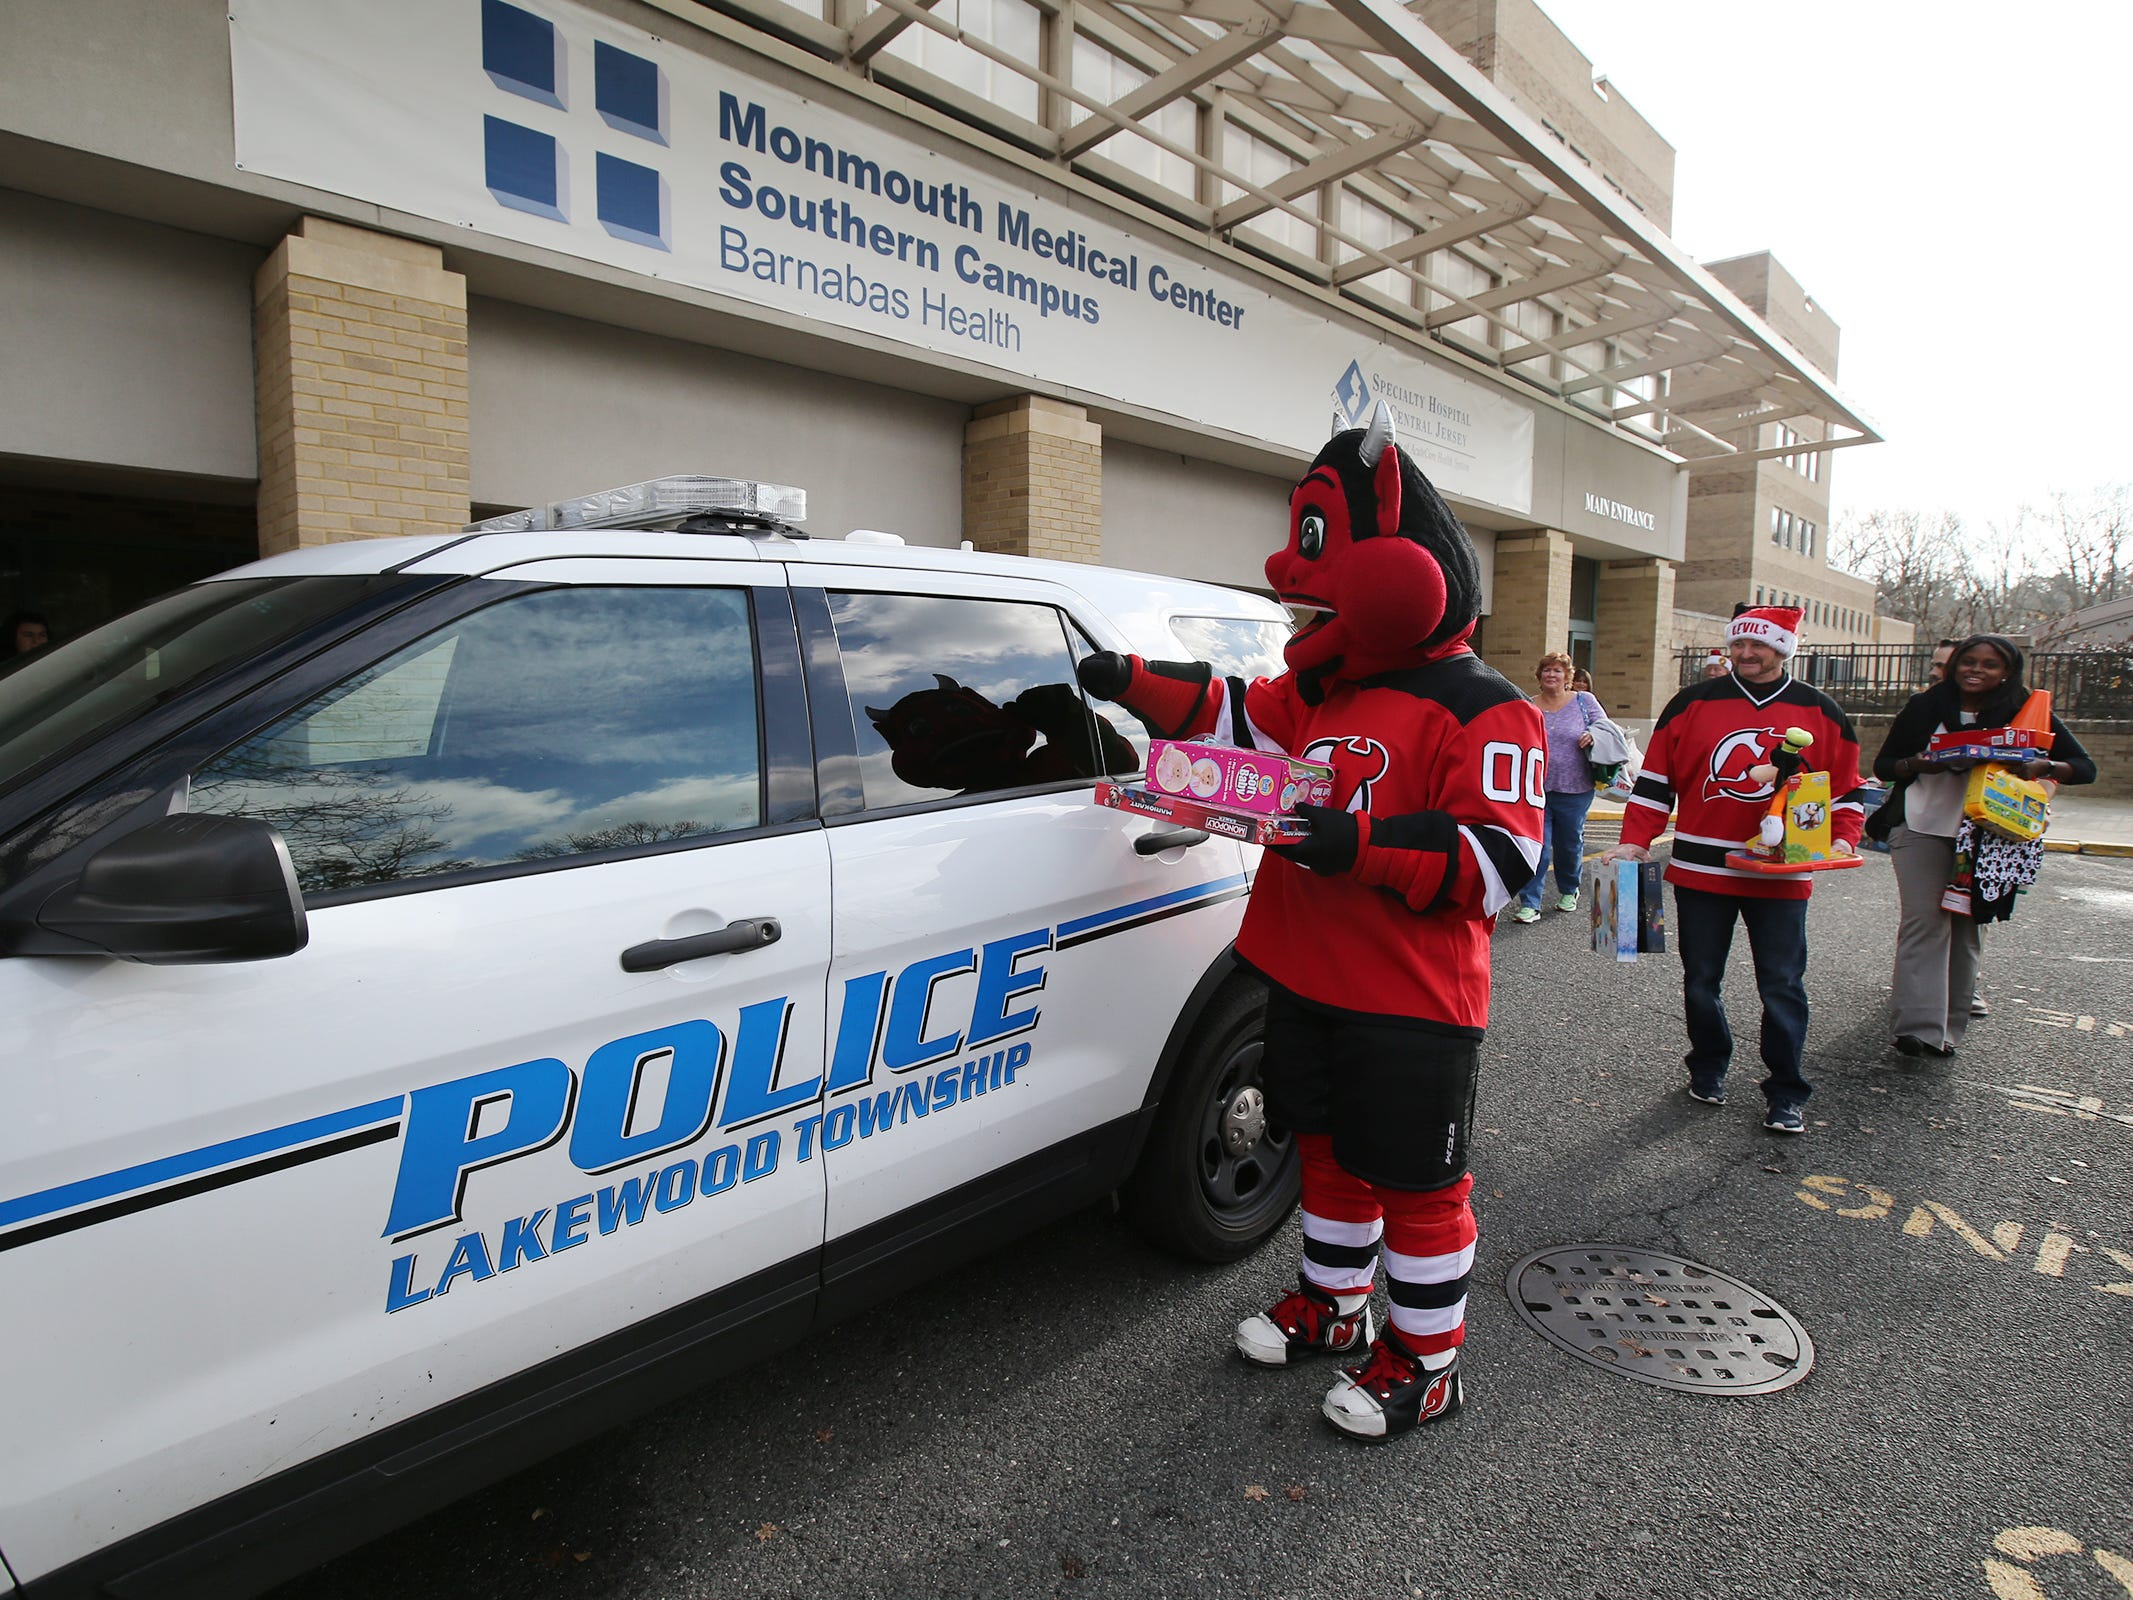 The New Jersey Devils' mascot packs donated toys into a police car during a visit to the Monmouth Medical Center Southern Campus in Lakewood, NJ Monday, December 17, 2018.